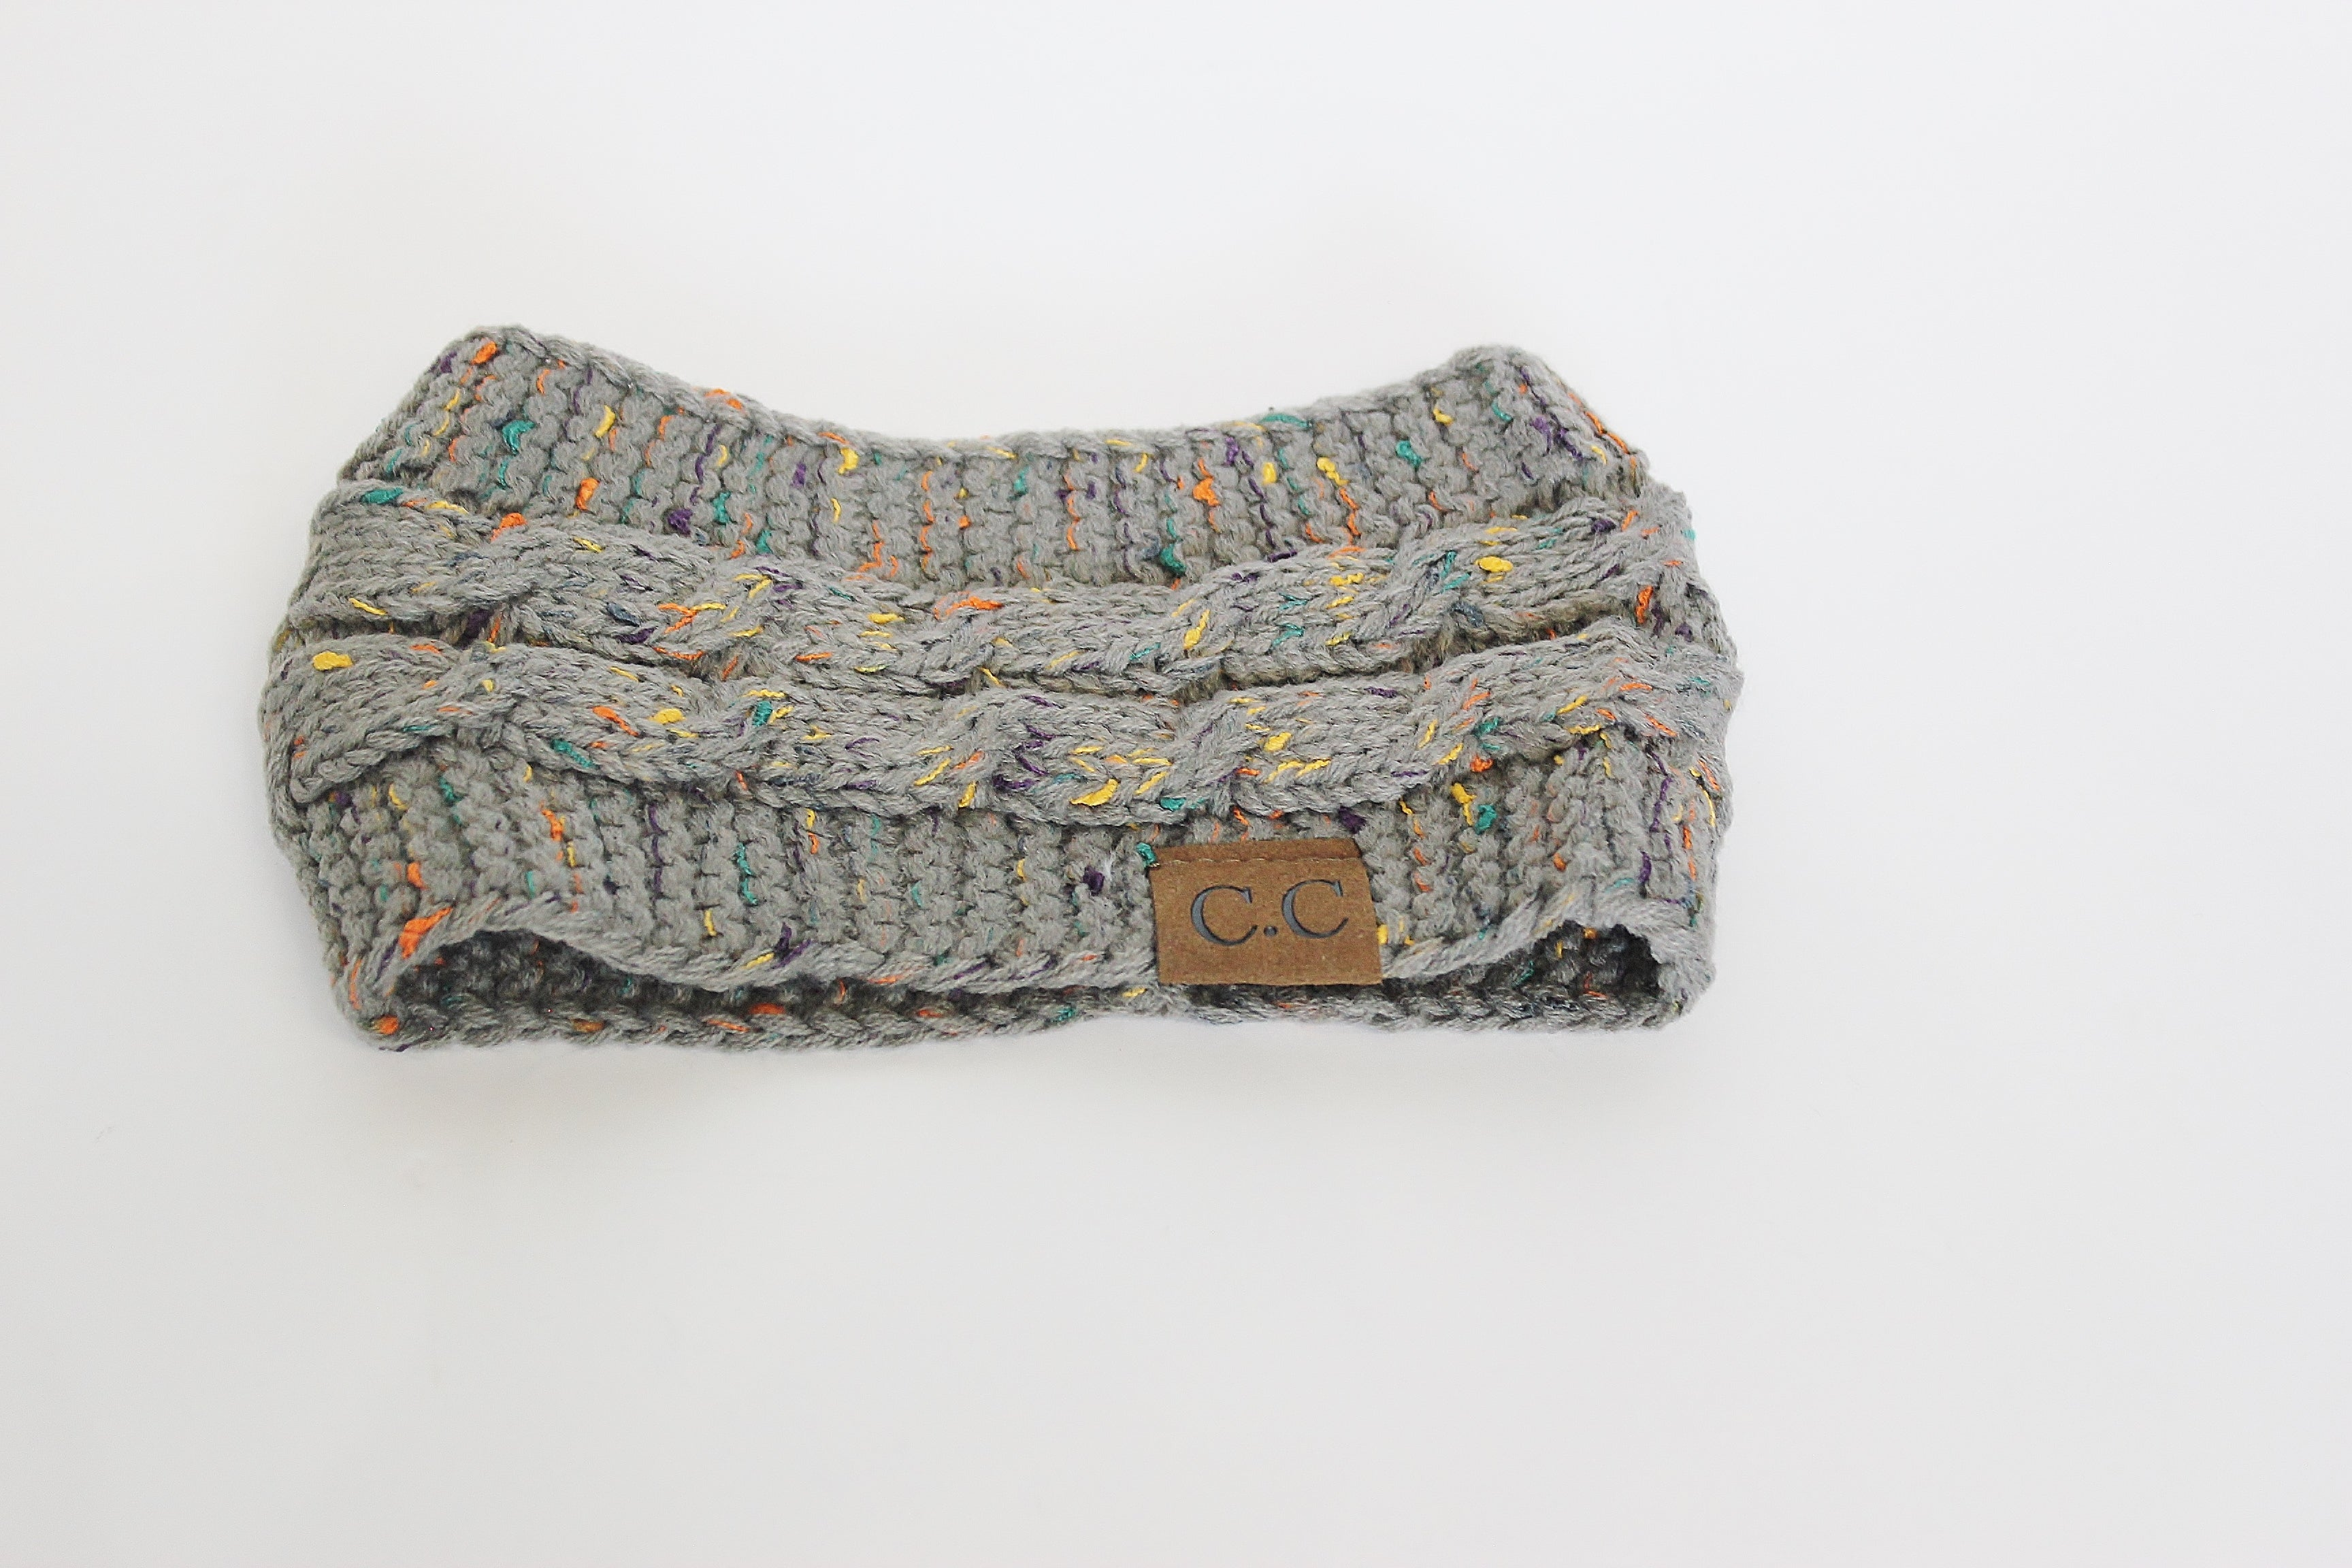 CC Knitted Headband